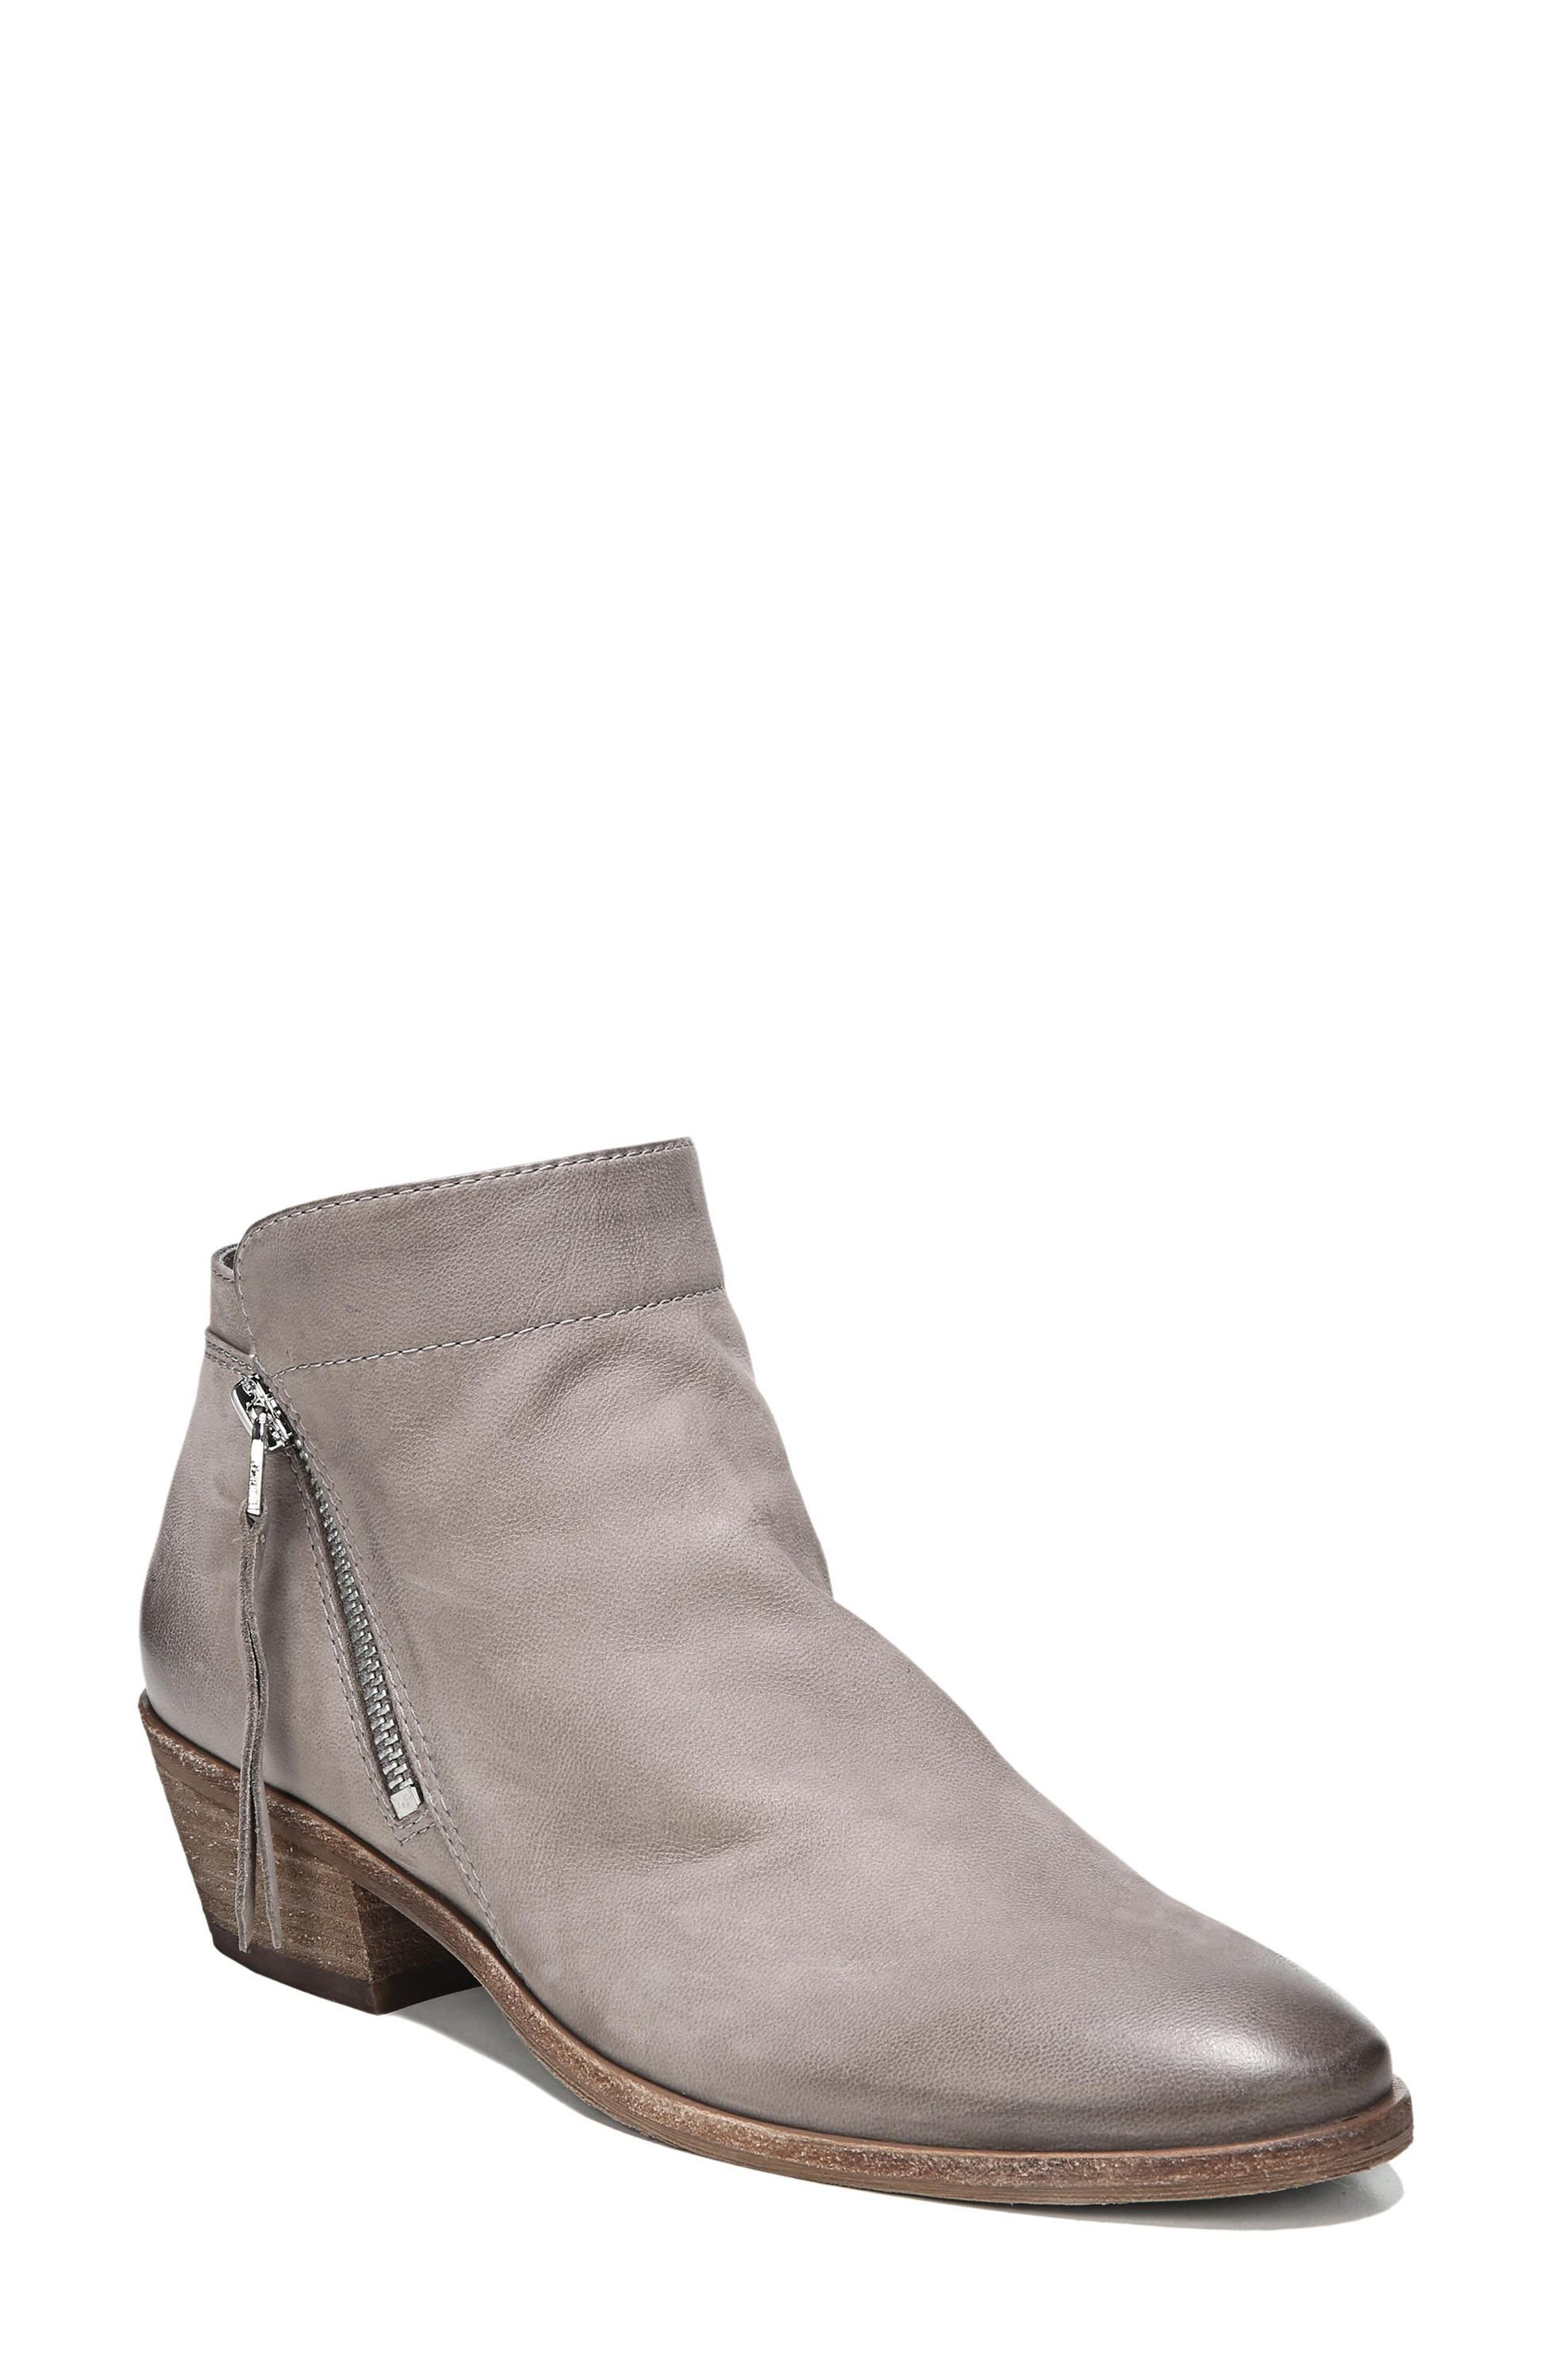 Sam Edelman Packer Bootie, Grey